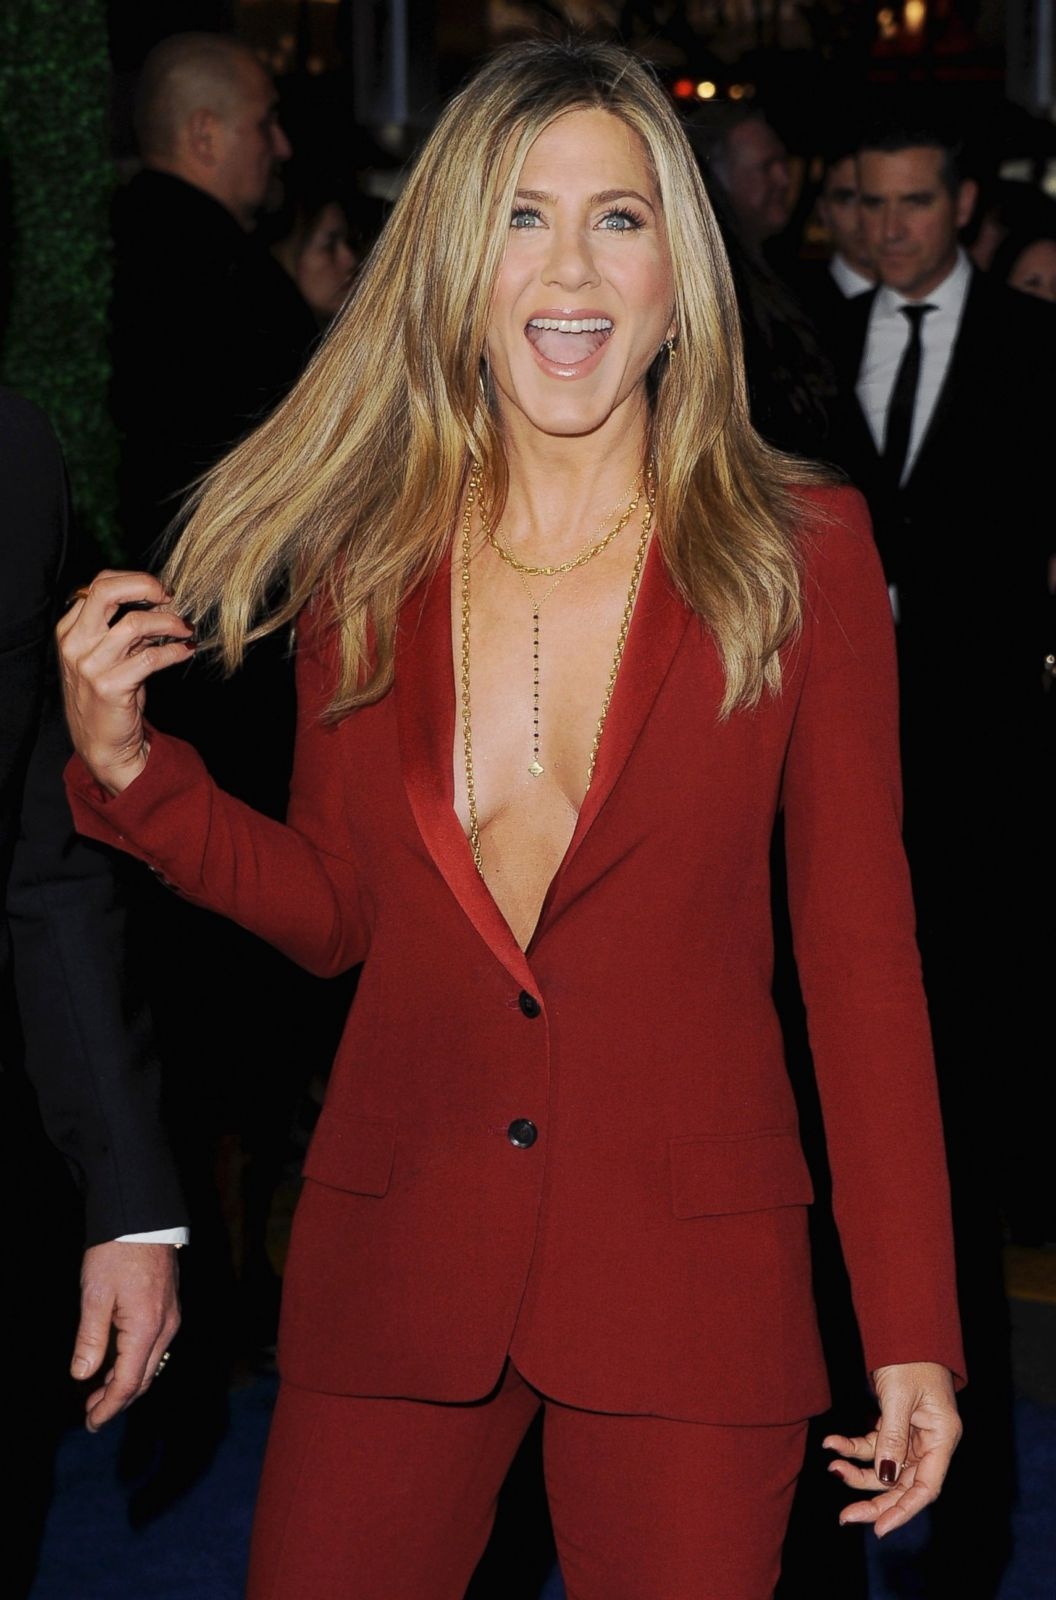 GTY_jennifer_Aniston1_ml_150116_2x3_1600-min